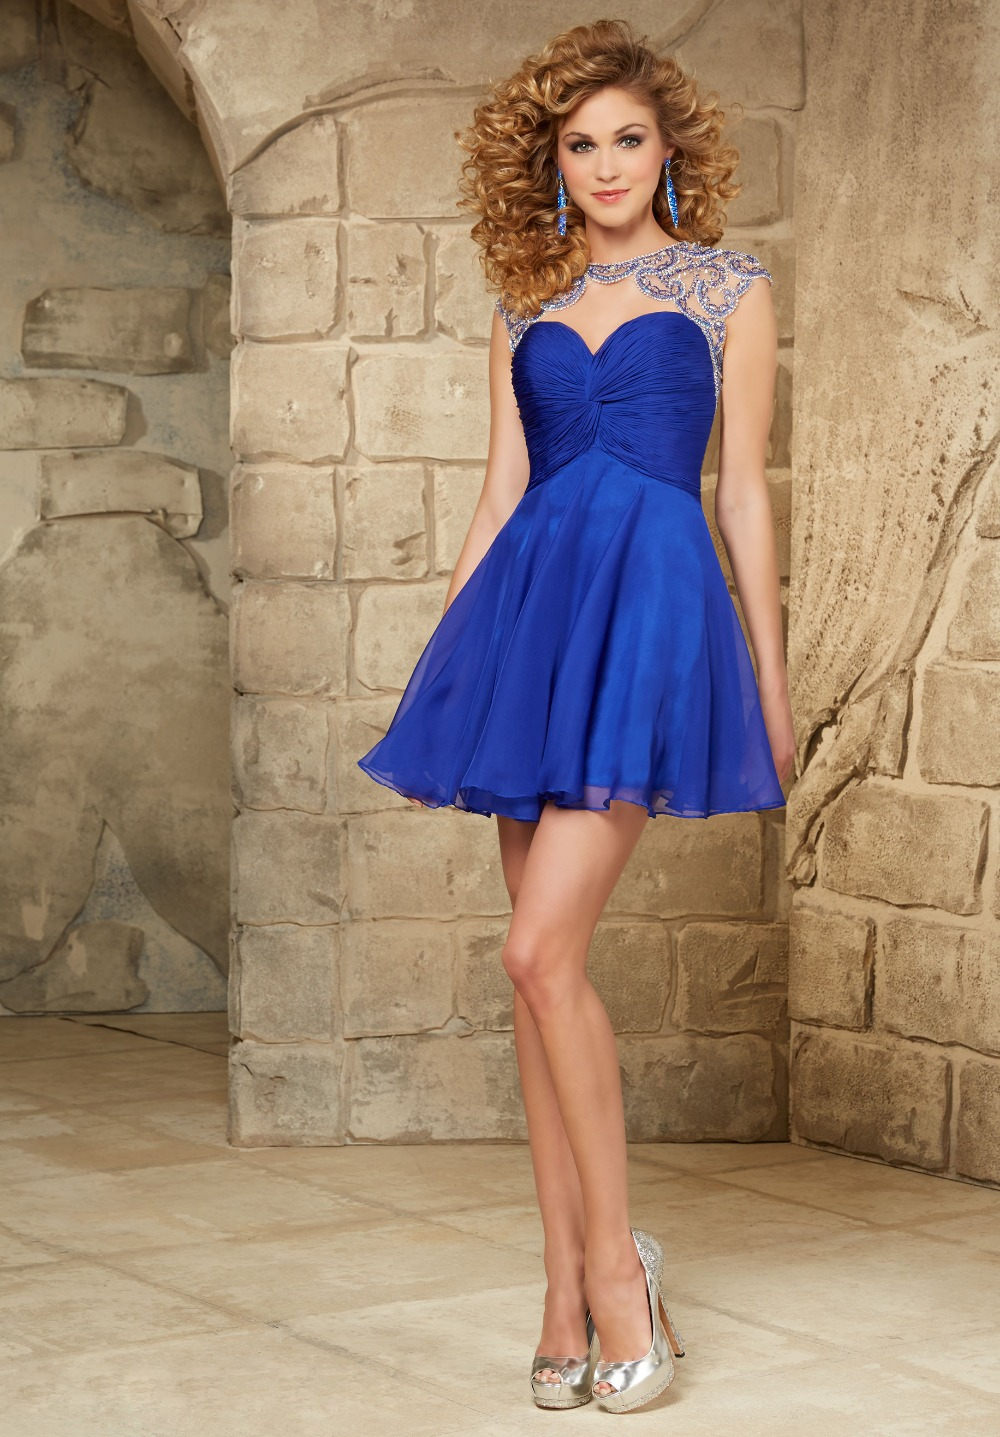 Blue Cocktail Dress with Sleeves